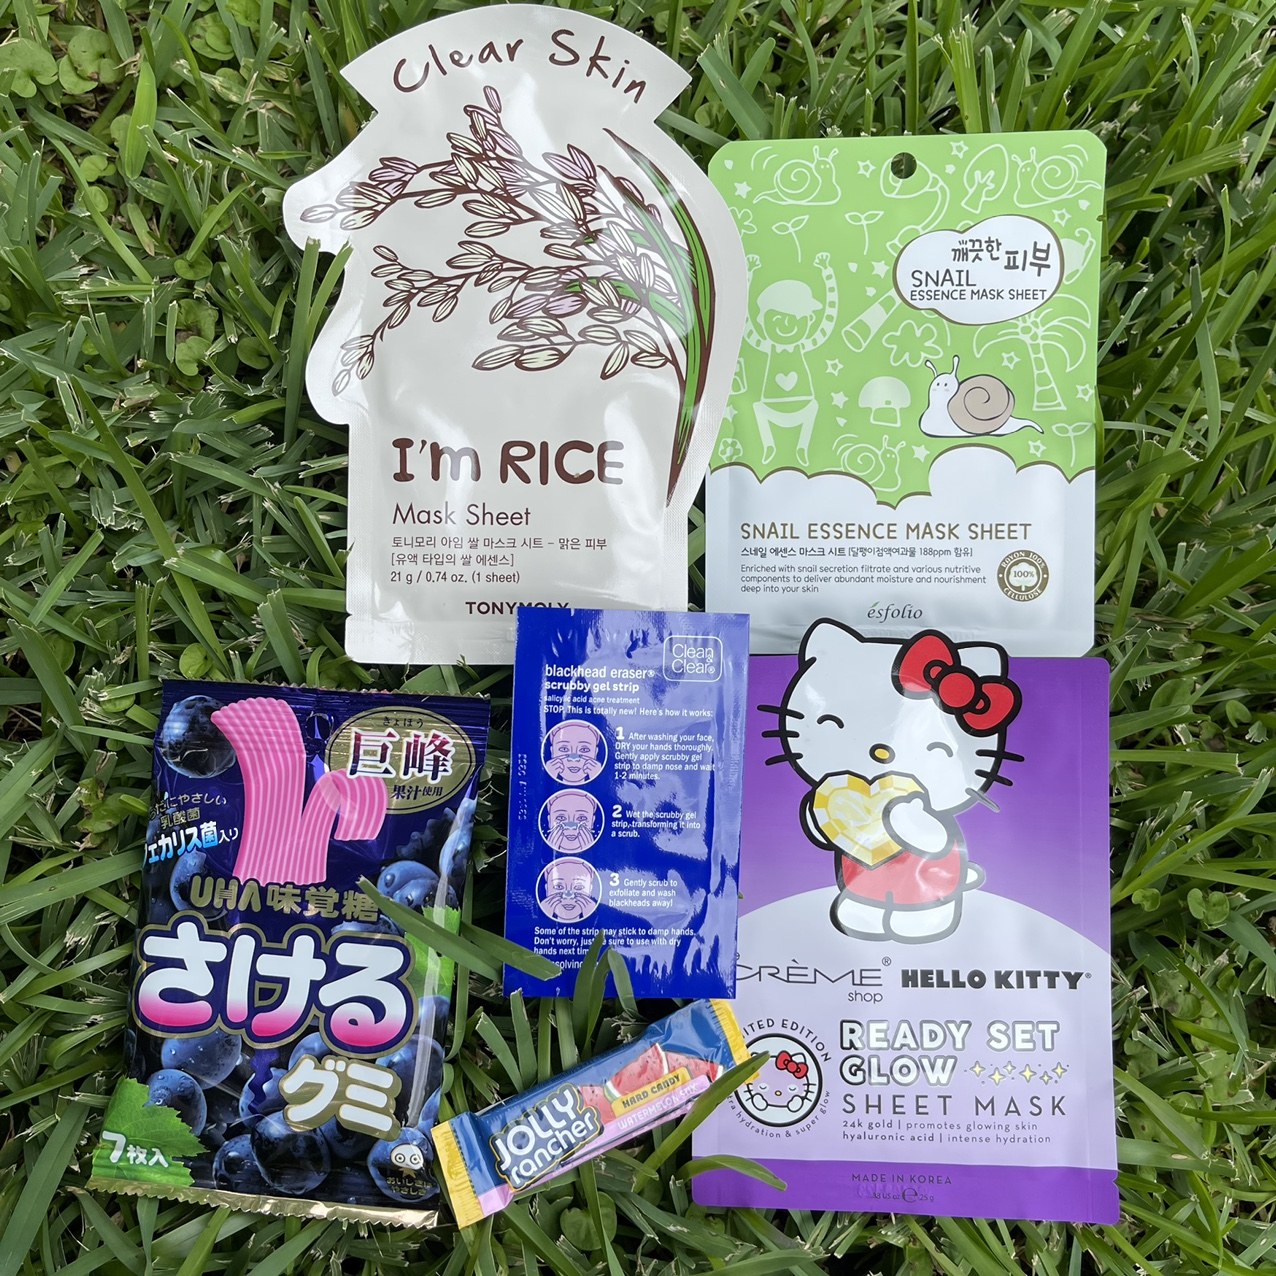 Product Image 1 - Skincare Goodie Bag  •comes with 1